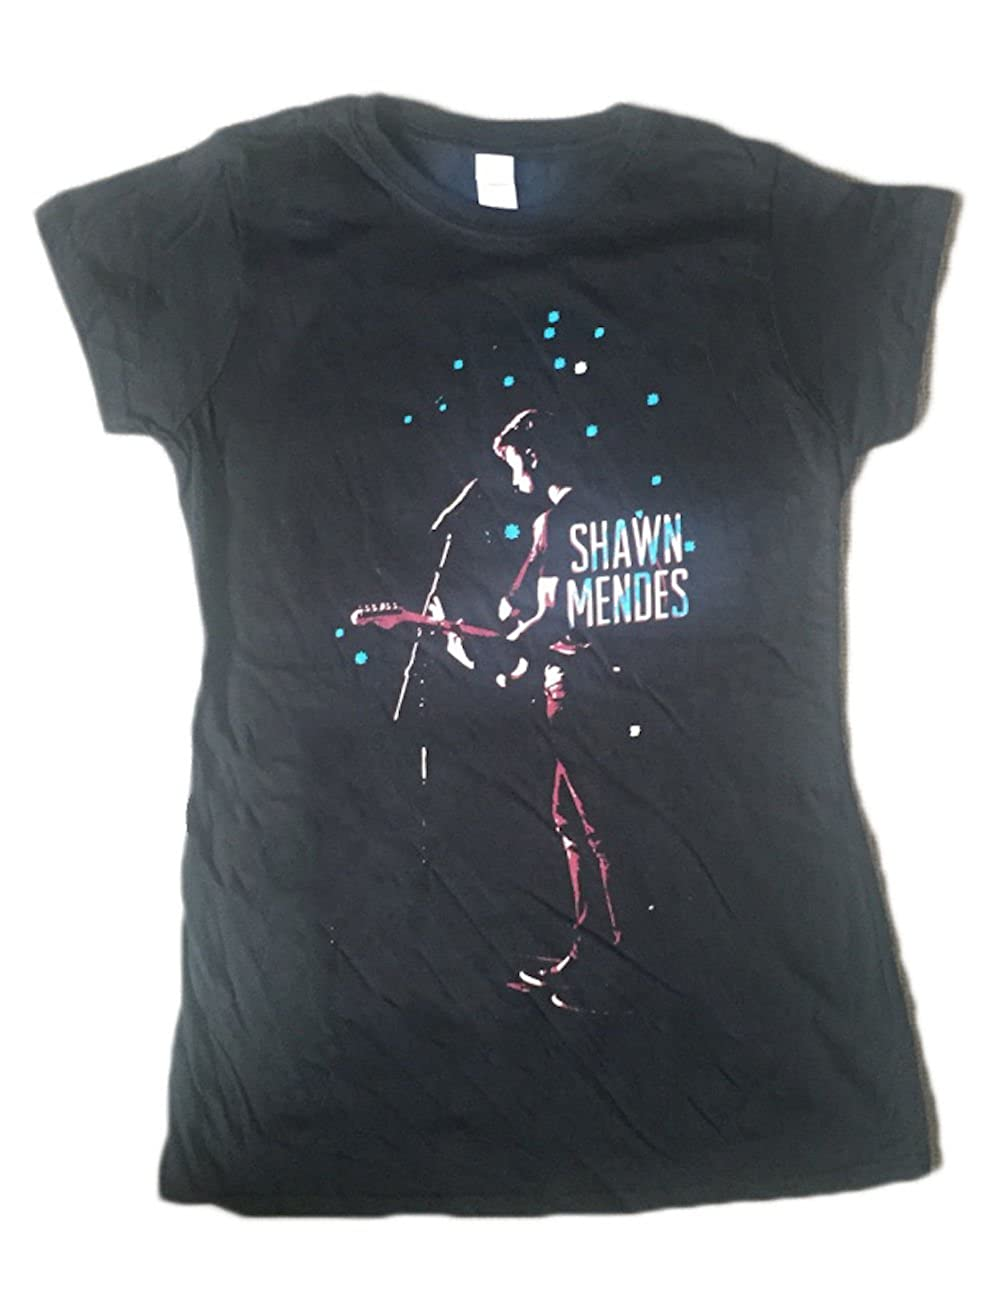 9fa4bbb3d Shawn Mendes Silhouette - Official Womens T Shirt Black: Amazon.co.uk:  Clothing